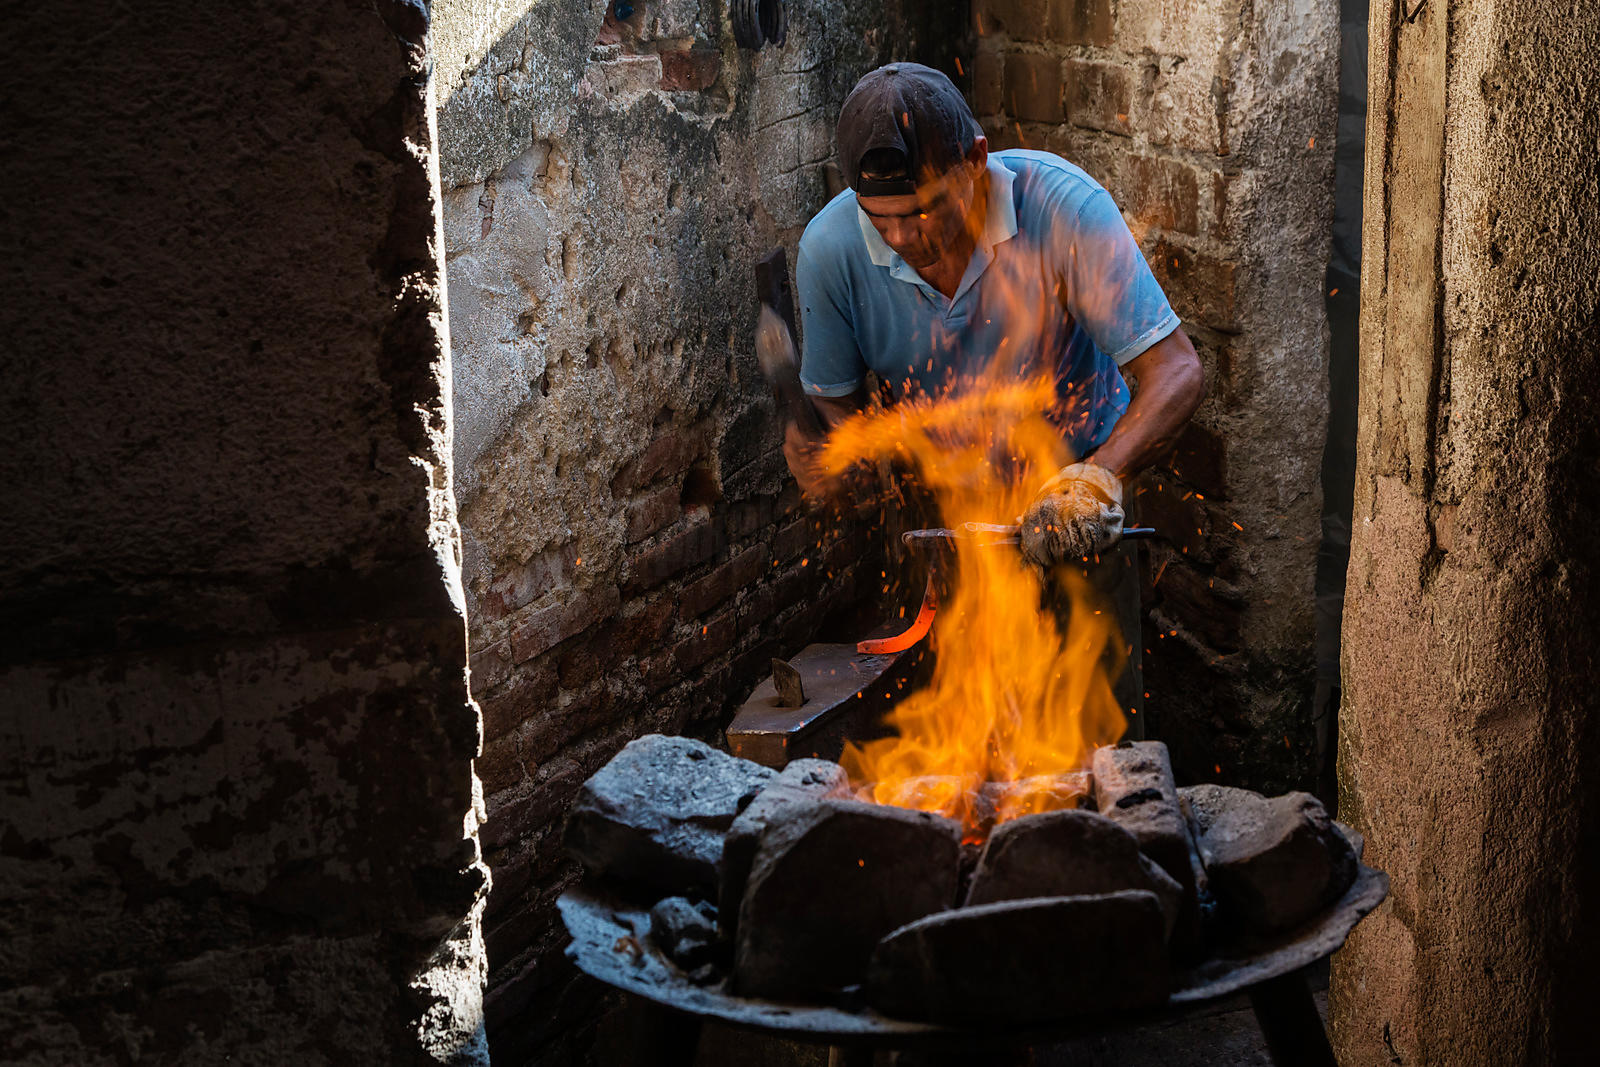 Blacksmith Making Horseshoes in a Home Forge